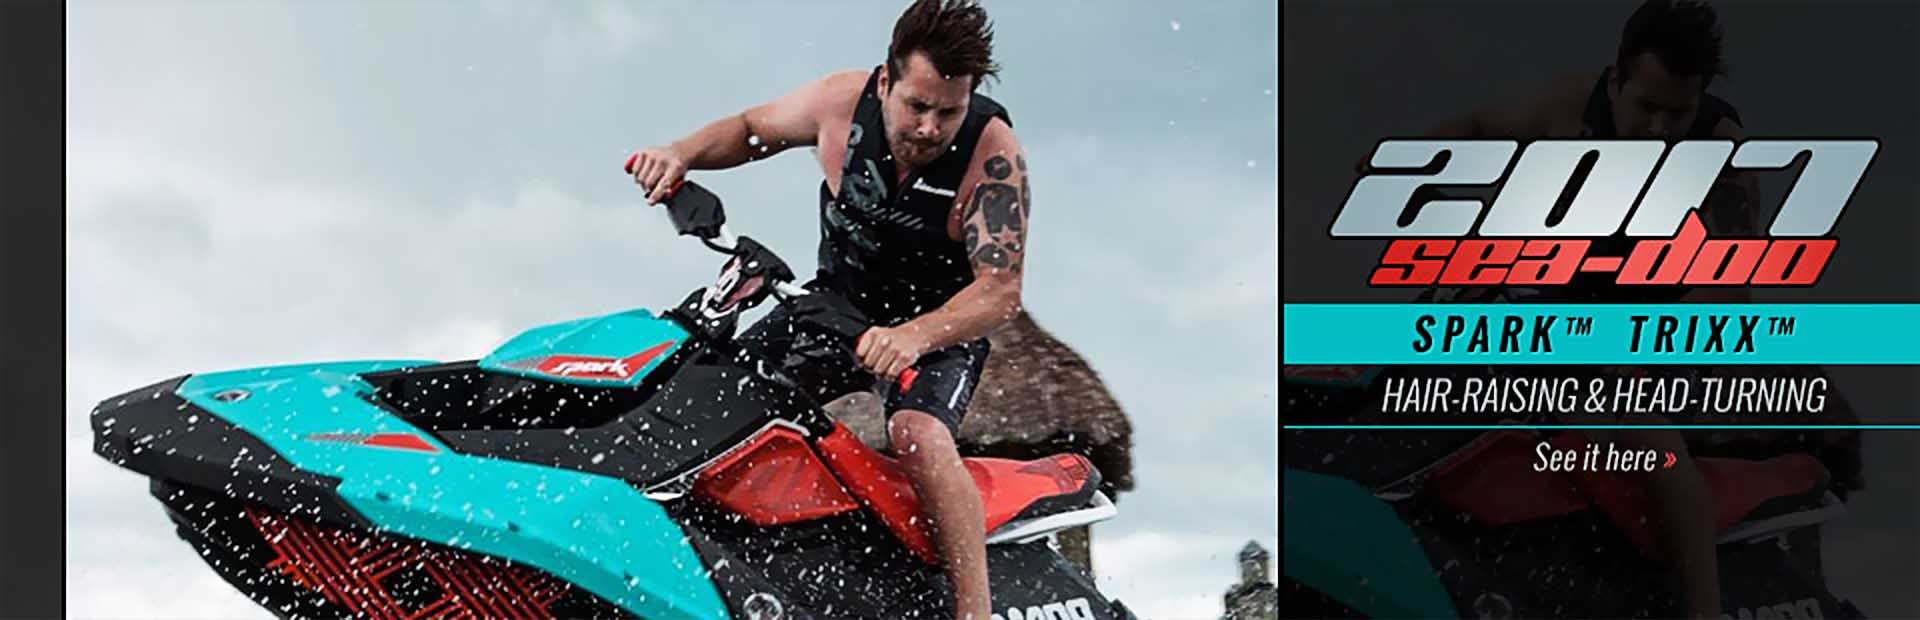 The 2017 Sea-Doo SPARK™ TRIXX™: Click here for details.